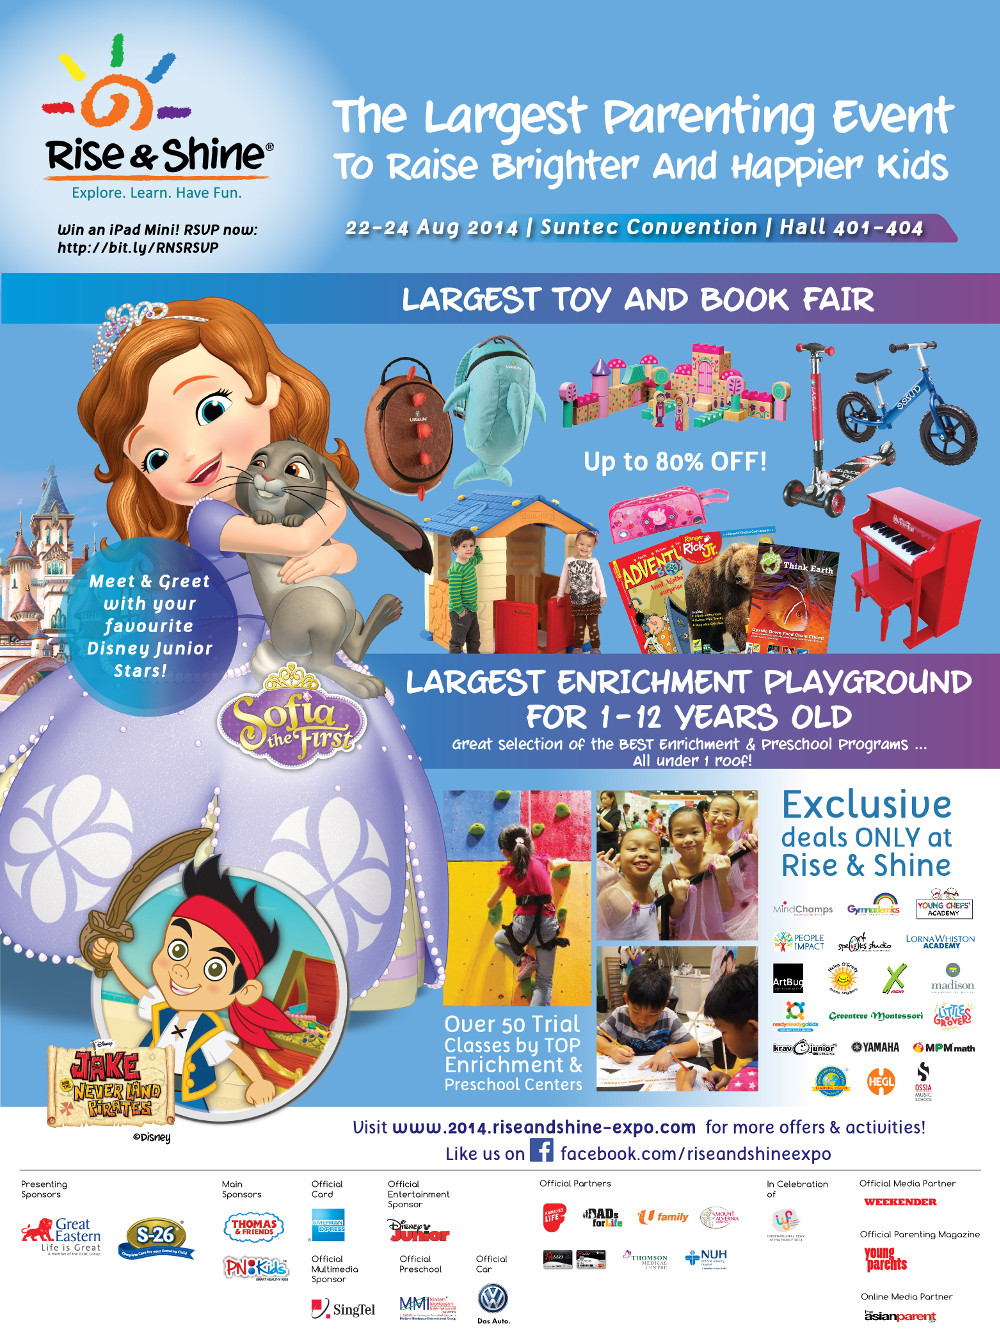 The Largest Parenting Event To Raise Brighter and Happier Kids from 22 to 24 Aug 2014 at Suntec Convection Hall 401-404. Largest Toy and Book Fair at Up to 80% OFF!. Meet & Greet with your favourite Disney Junior Stars!. Largest Enrichment Playground for 1-12 Year Old. Exclusive deals ONLY at Rise & Shine.